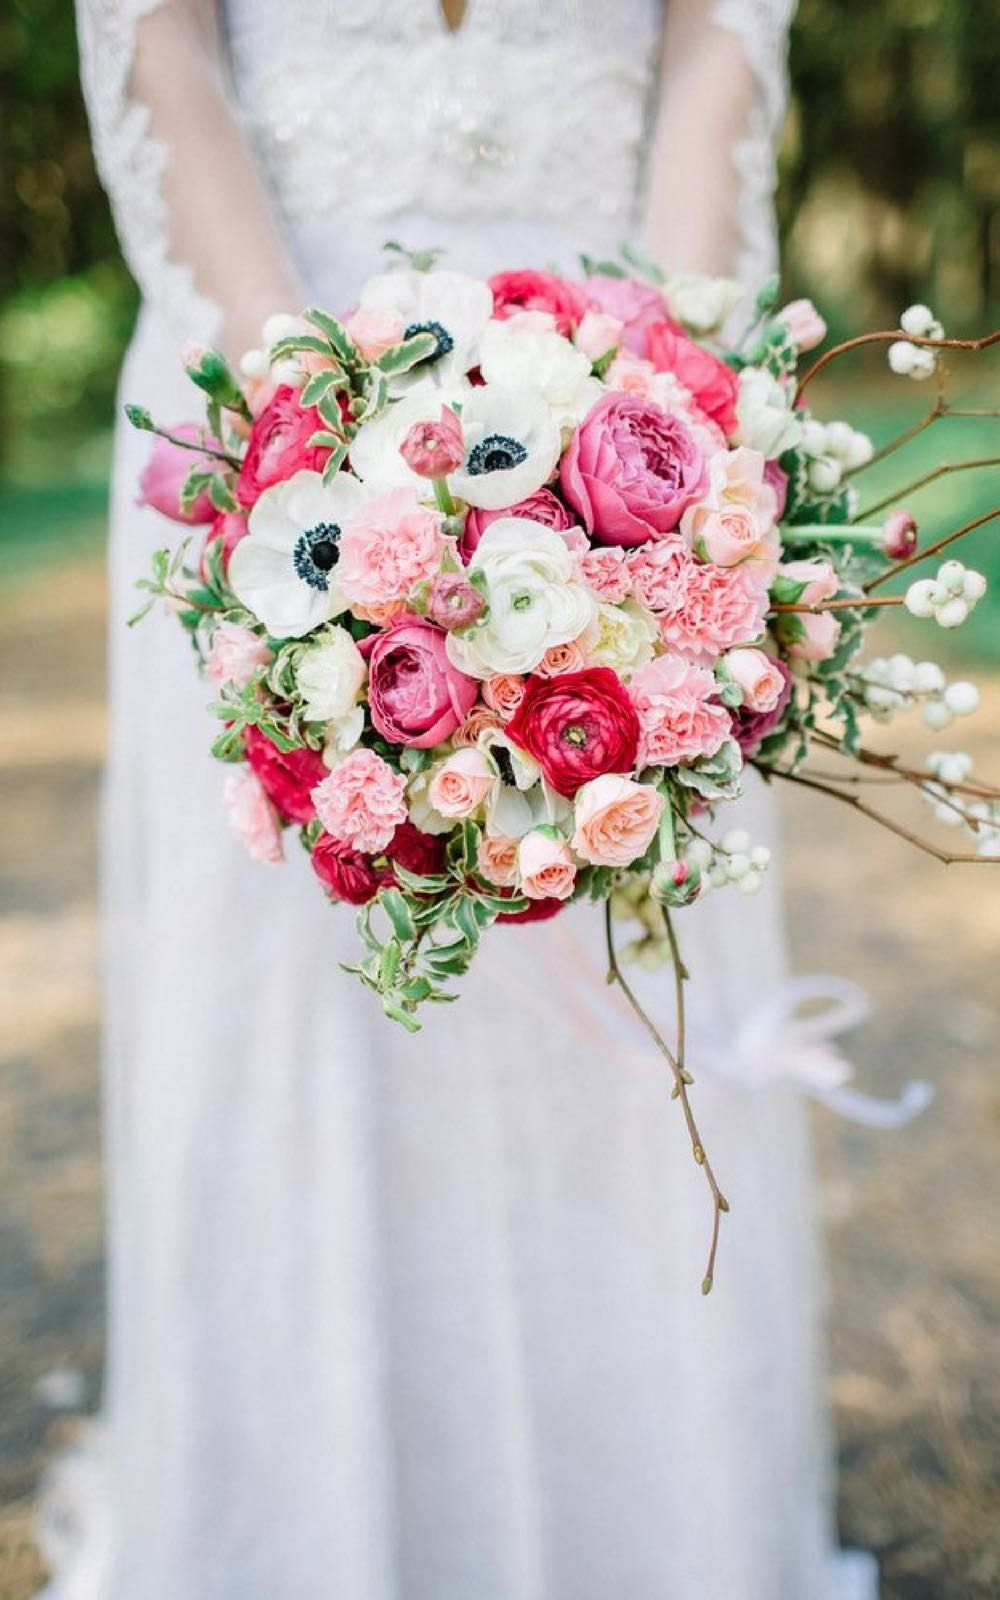 How to diy wedding flowers bouquets and centerpieces diy flowers how to diy wedding flowers bouquets and centerpieces izmirmasajfo